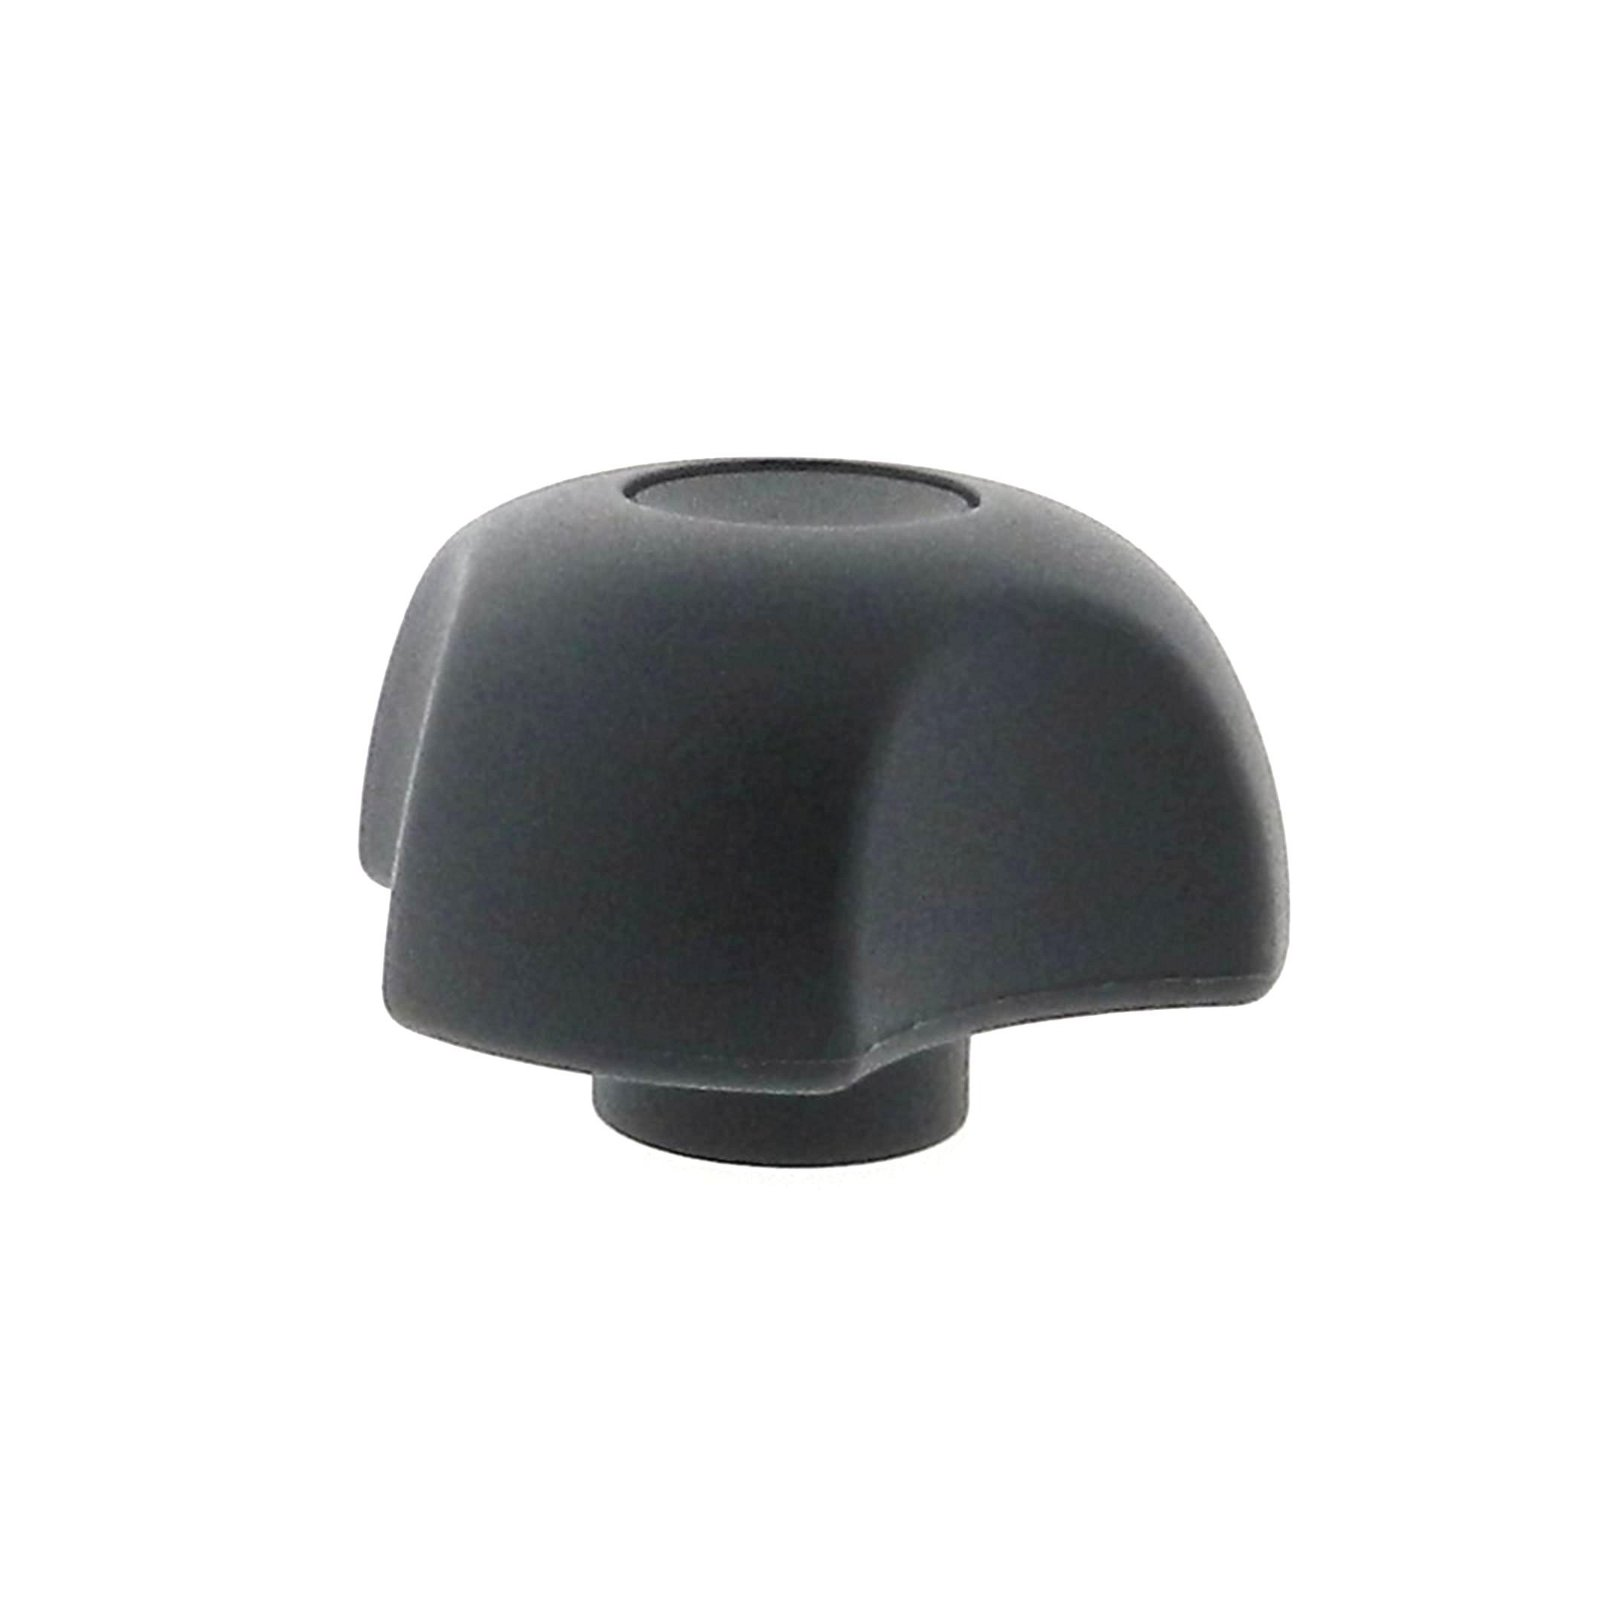 A thermoplastic 3-lobe knob with a brass tapped hole